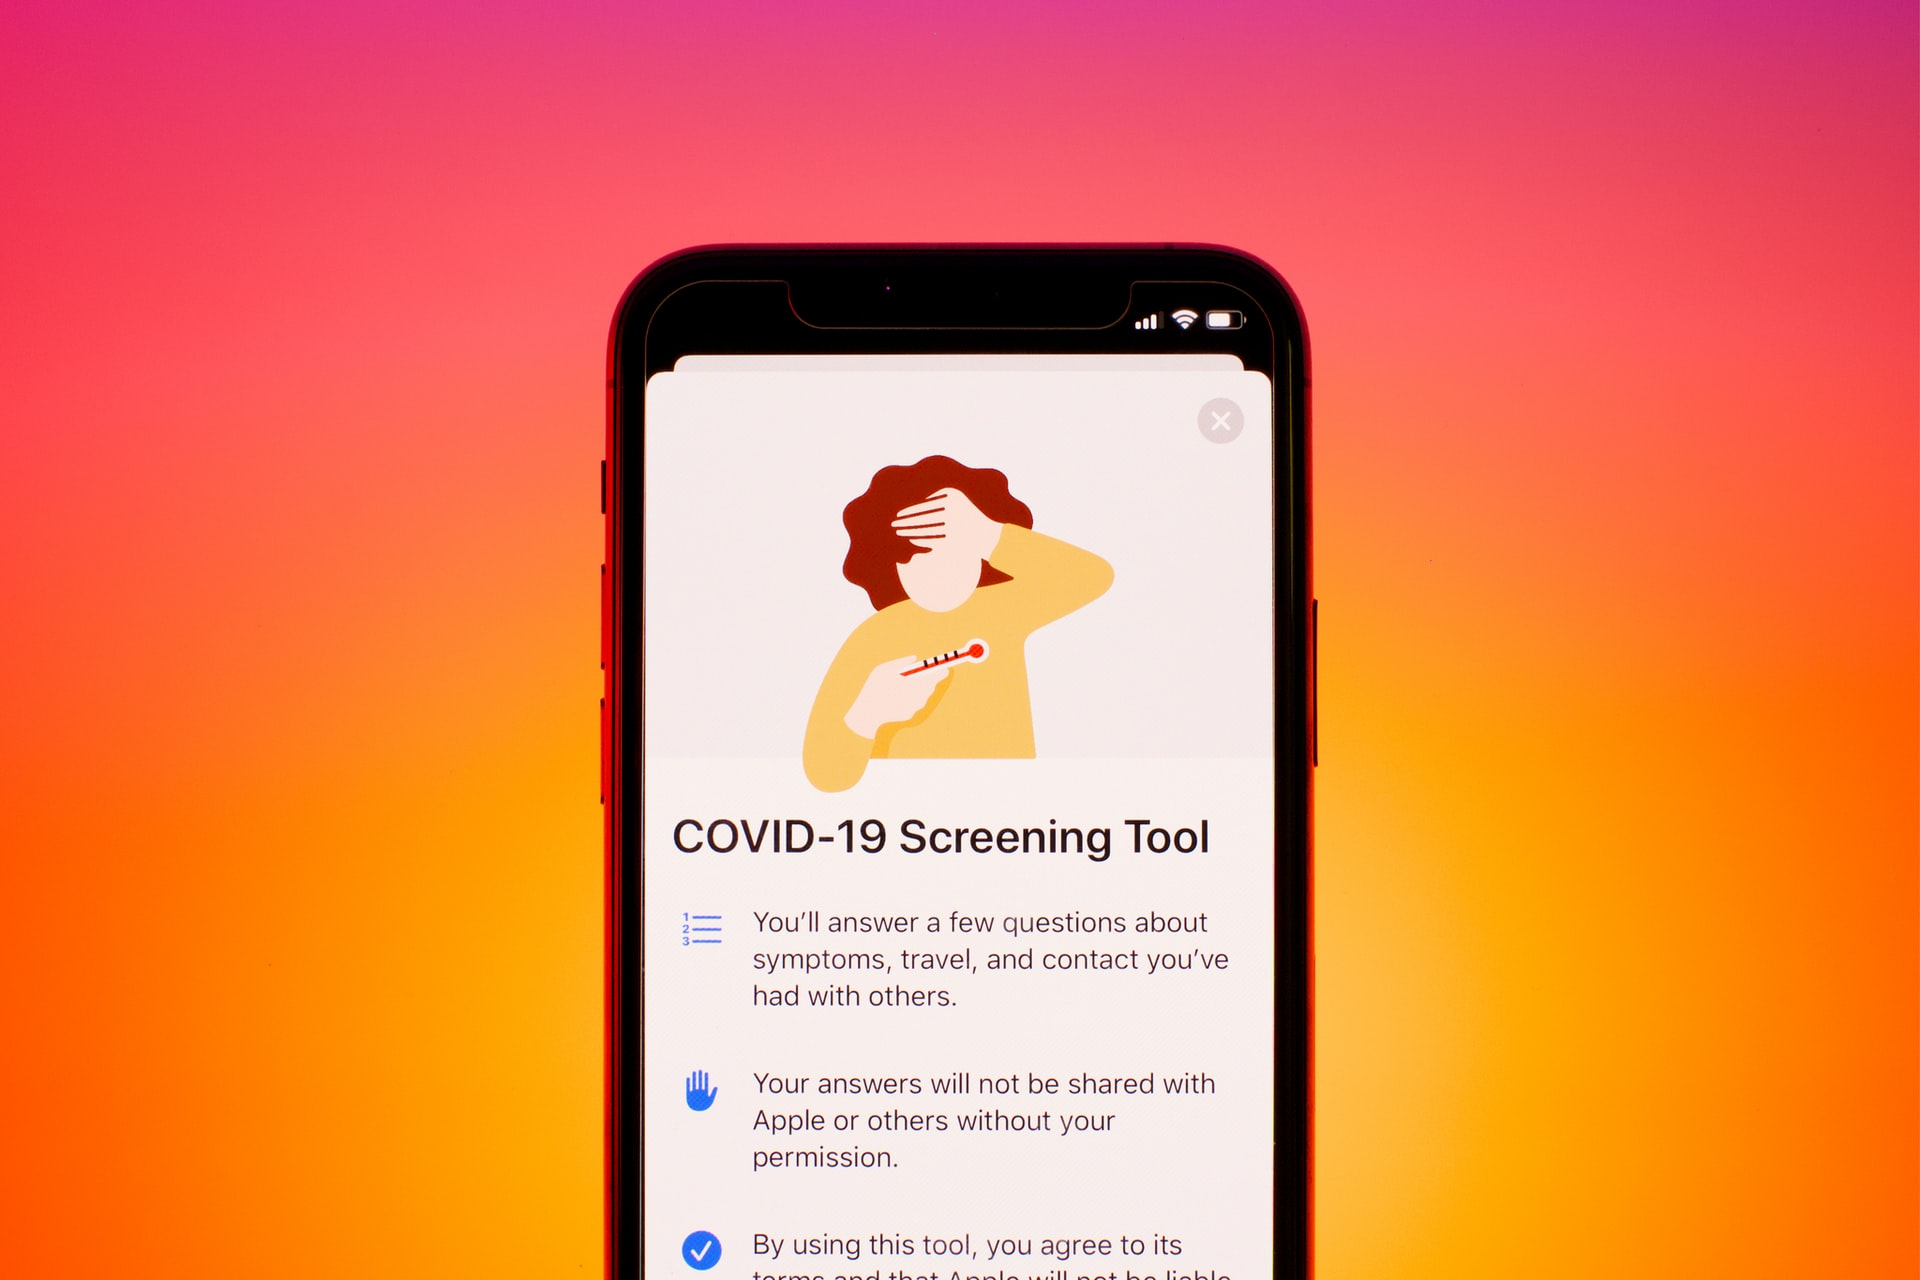 image of covid detection tool on smartphone